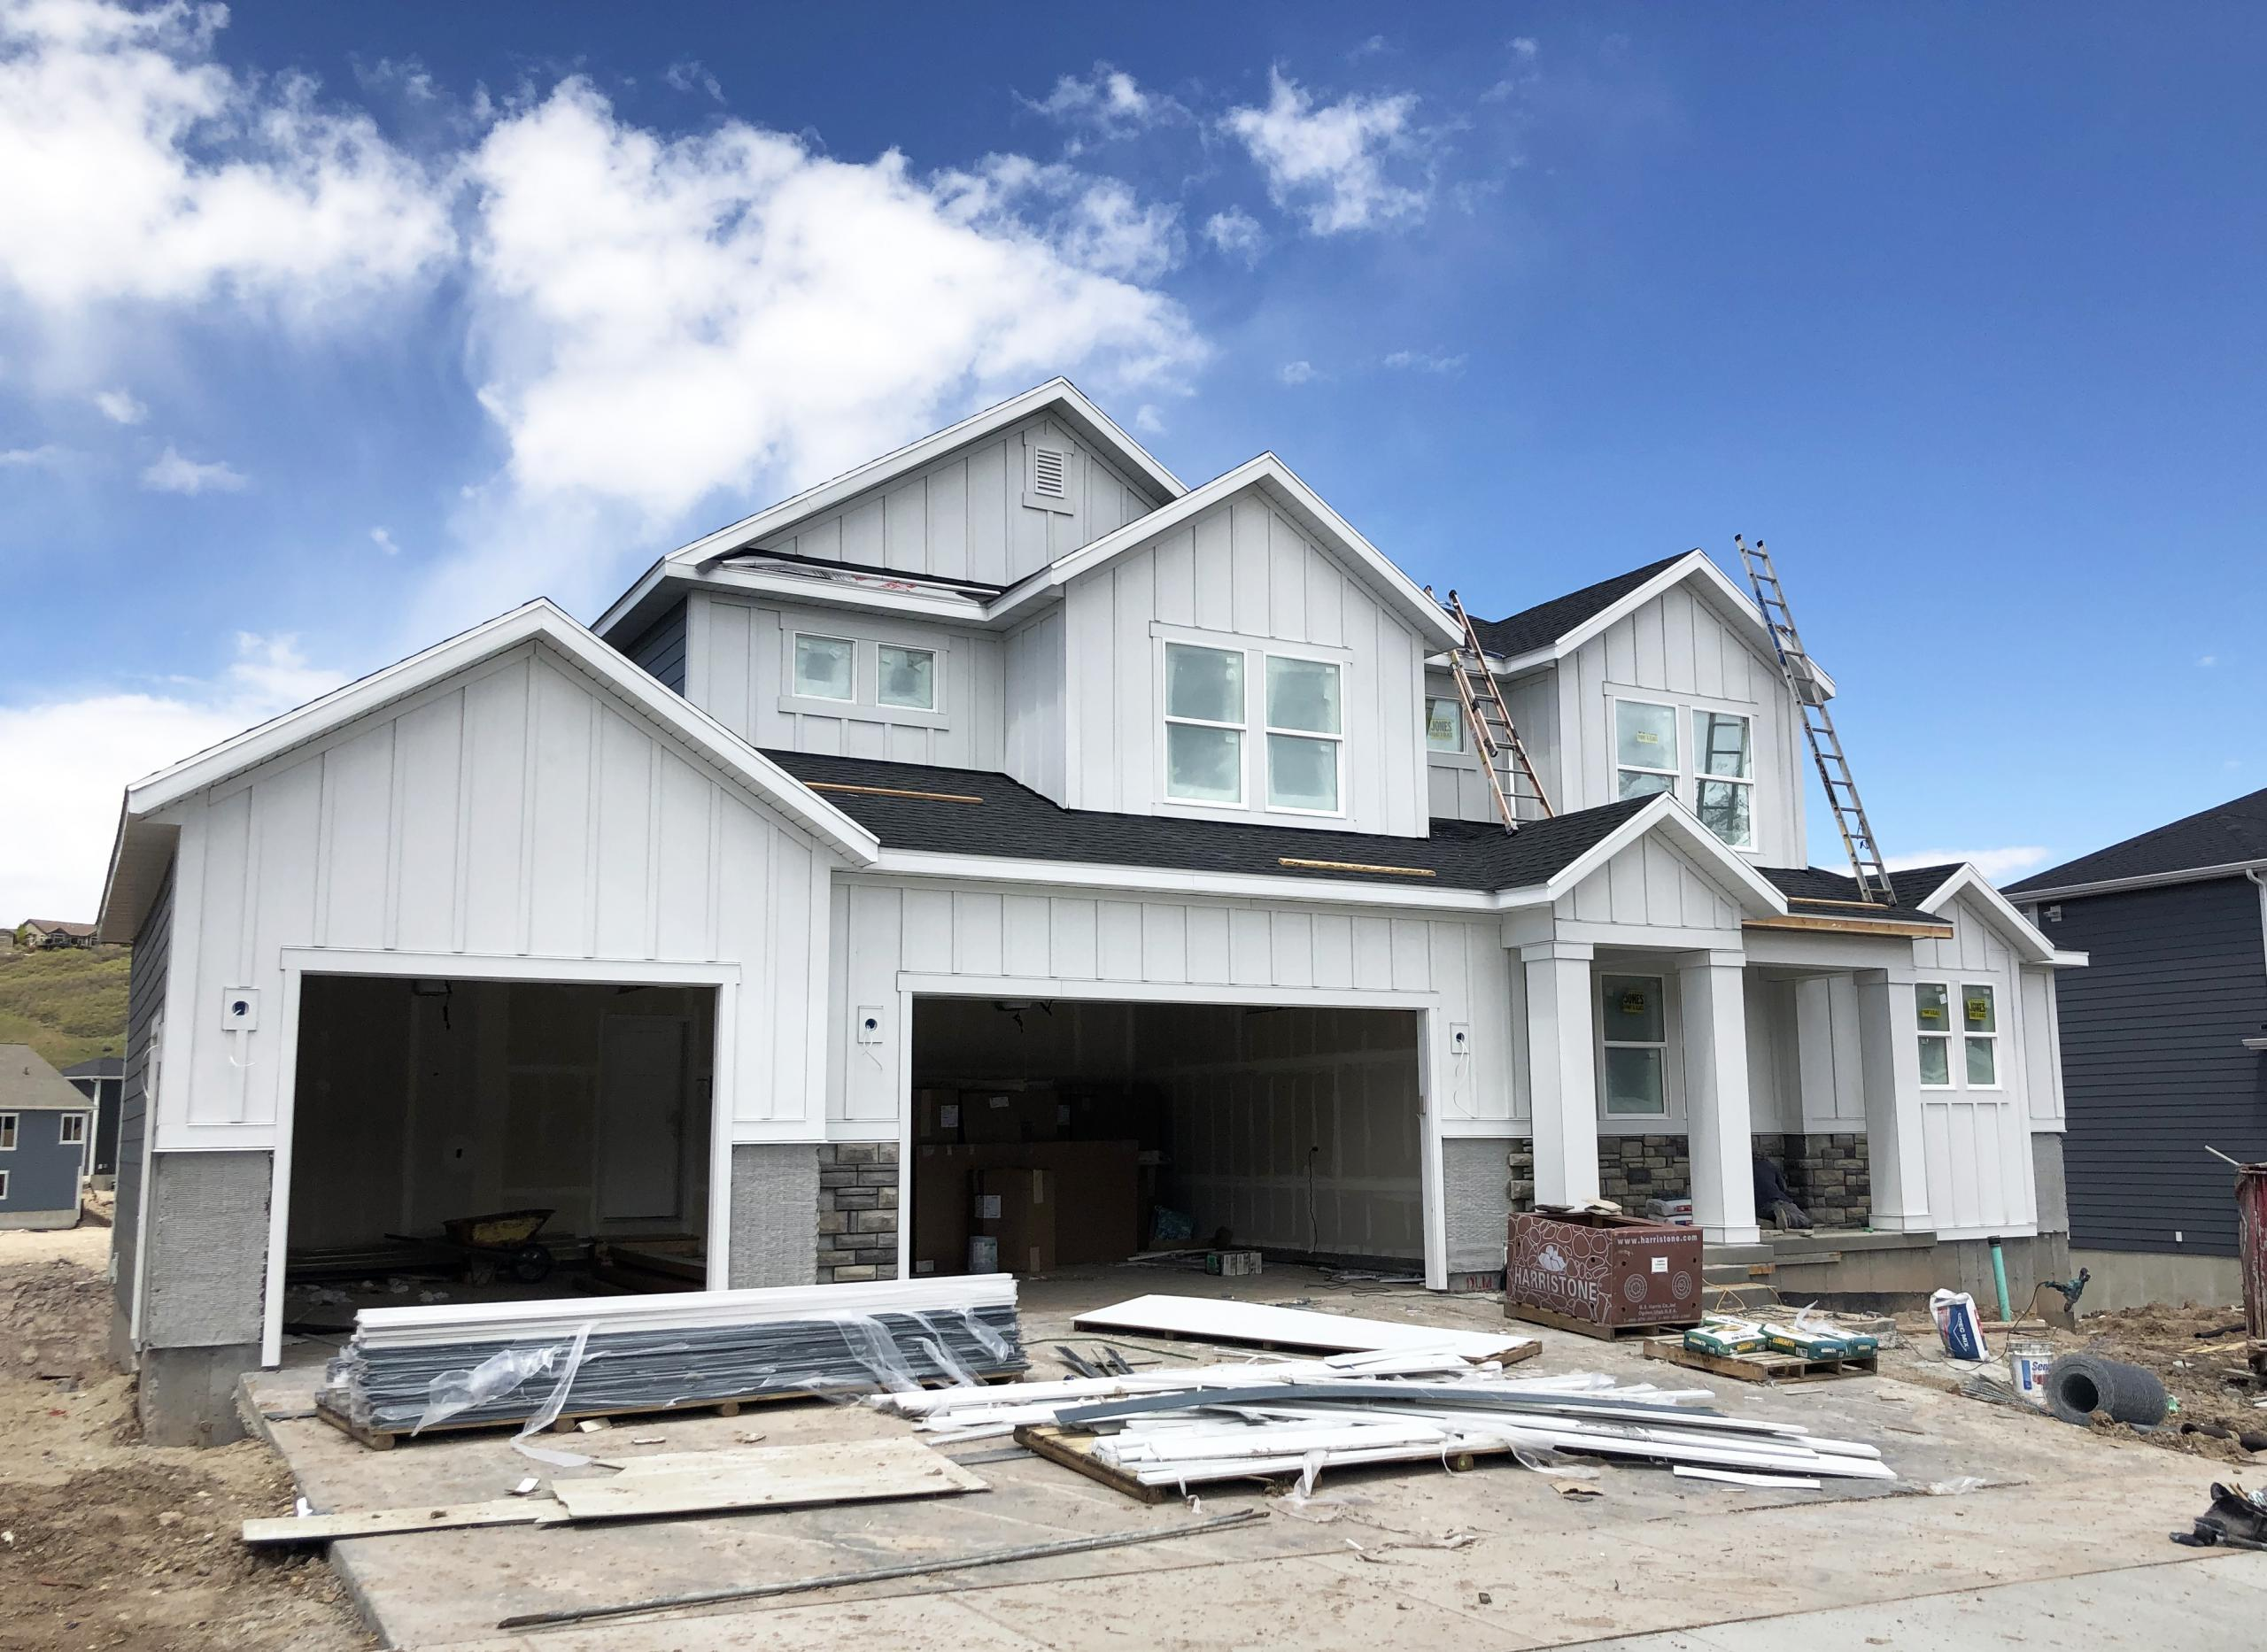 Can You Build a Home With an FHA Loan?